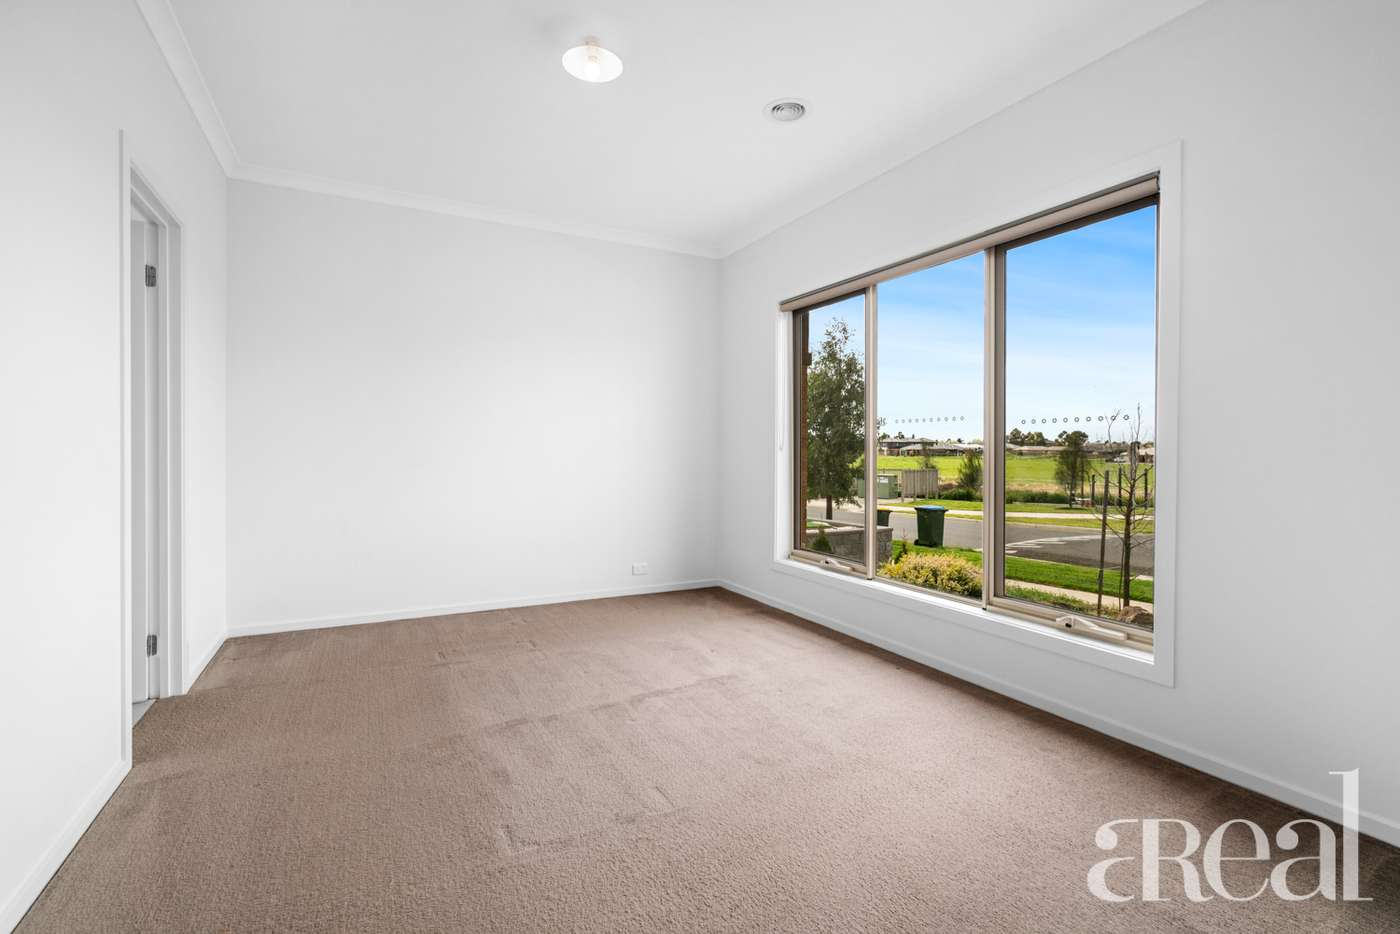 Seventh view of Homely house listing, 50 Lansdowne Parade, Tarneit VIC 3029